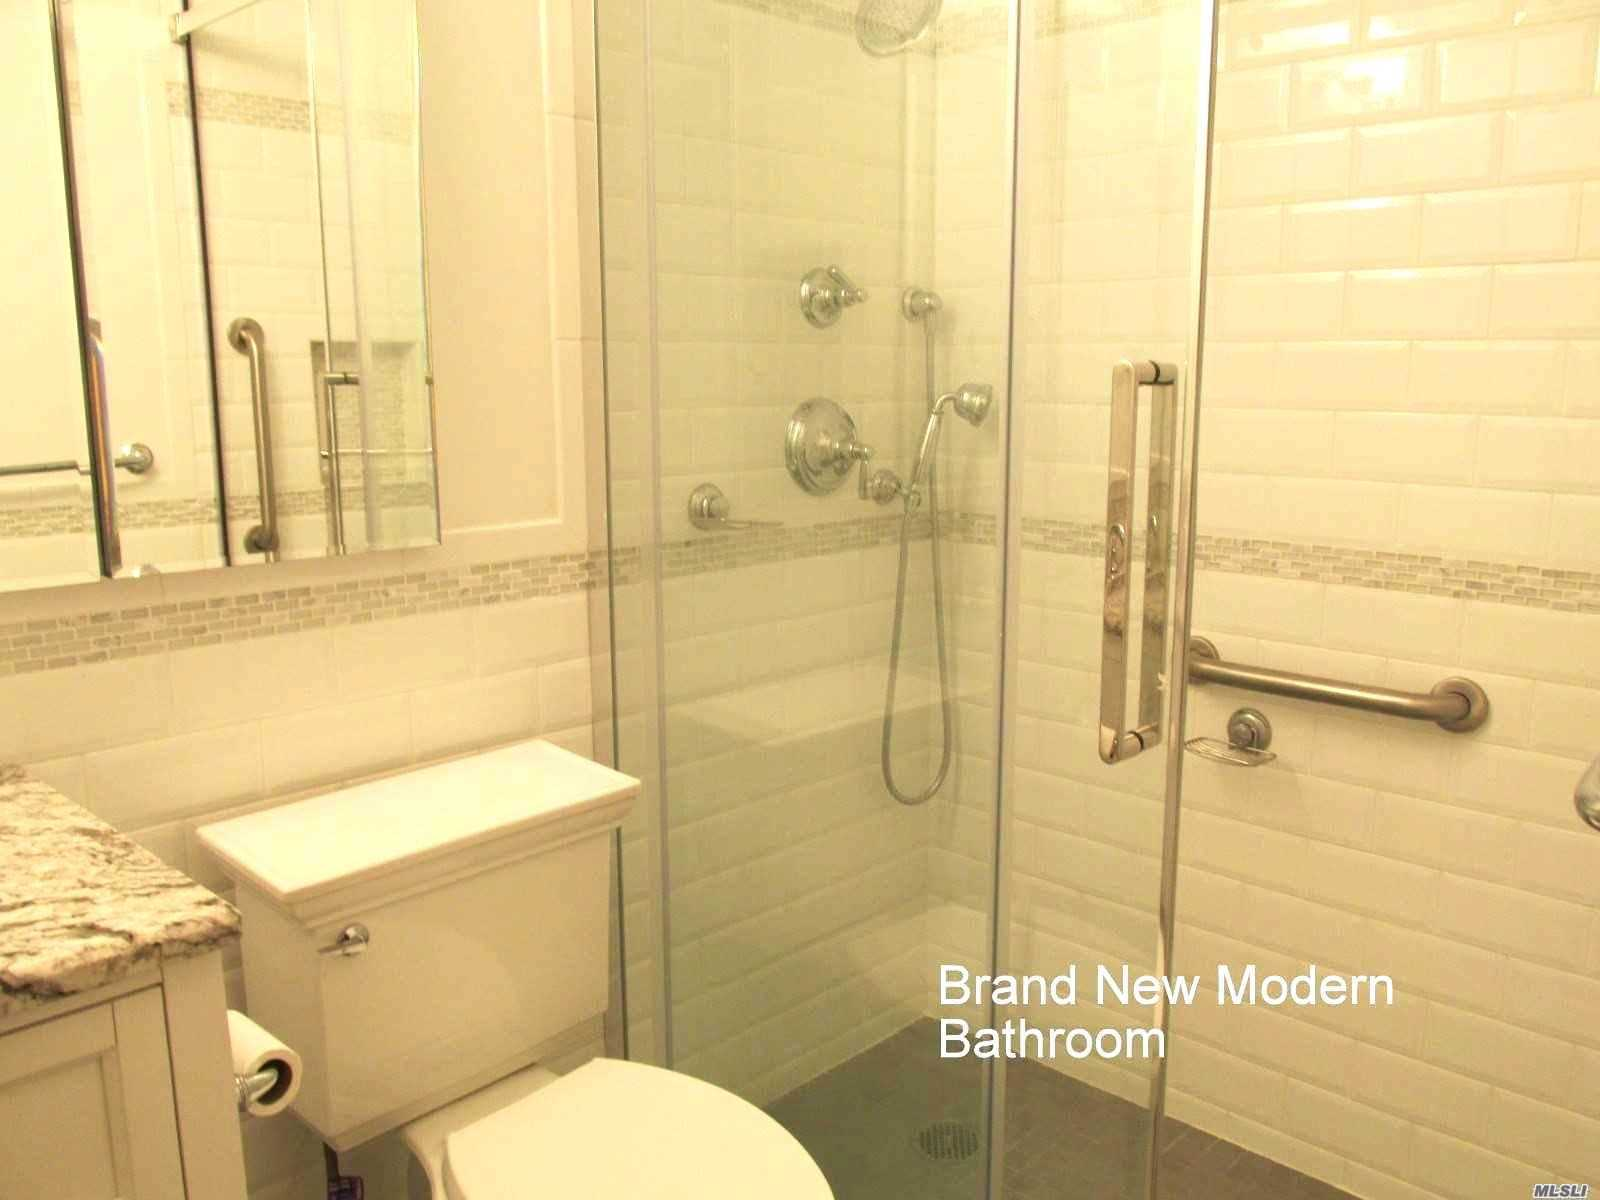 Largest One Bedroom With Formal Dining Room Plus Den Plus Double Terrace (Size Of A Two Bedroom); Brand New White/Grey Top Of Line Bathroom; Closets Galore; Granite Kitchen; This Is Largest One Bedroom With Direct Pond View; Priced To Sell. Year Round Health/Fitness Club; Shopping Arcade; Restaurant On Premises; Deli, Beauty Salon, Dry Cleaners, Pool, Tennis Courts Plus Much More; Near Transportation And Shopping Center - A Must See.